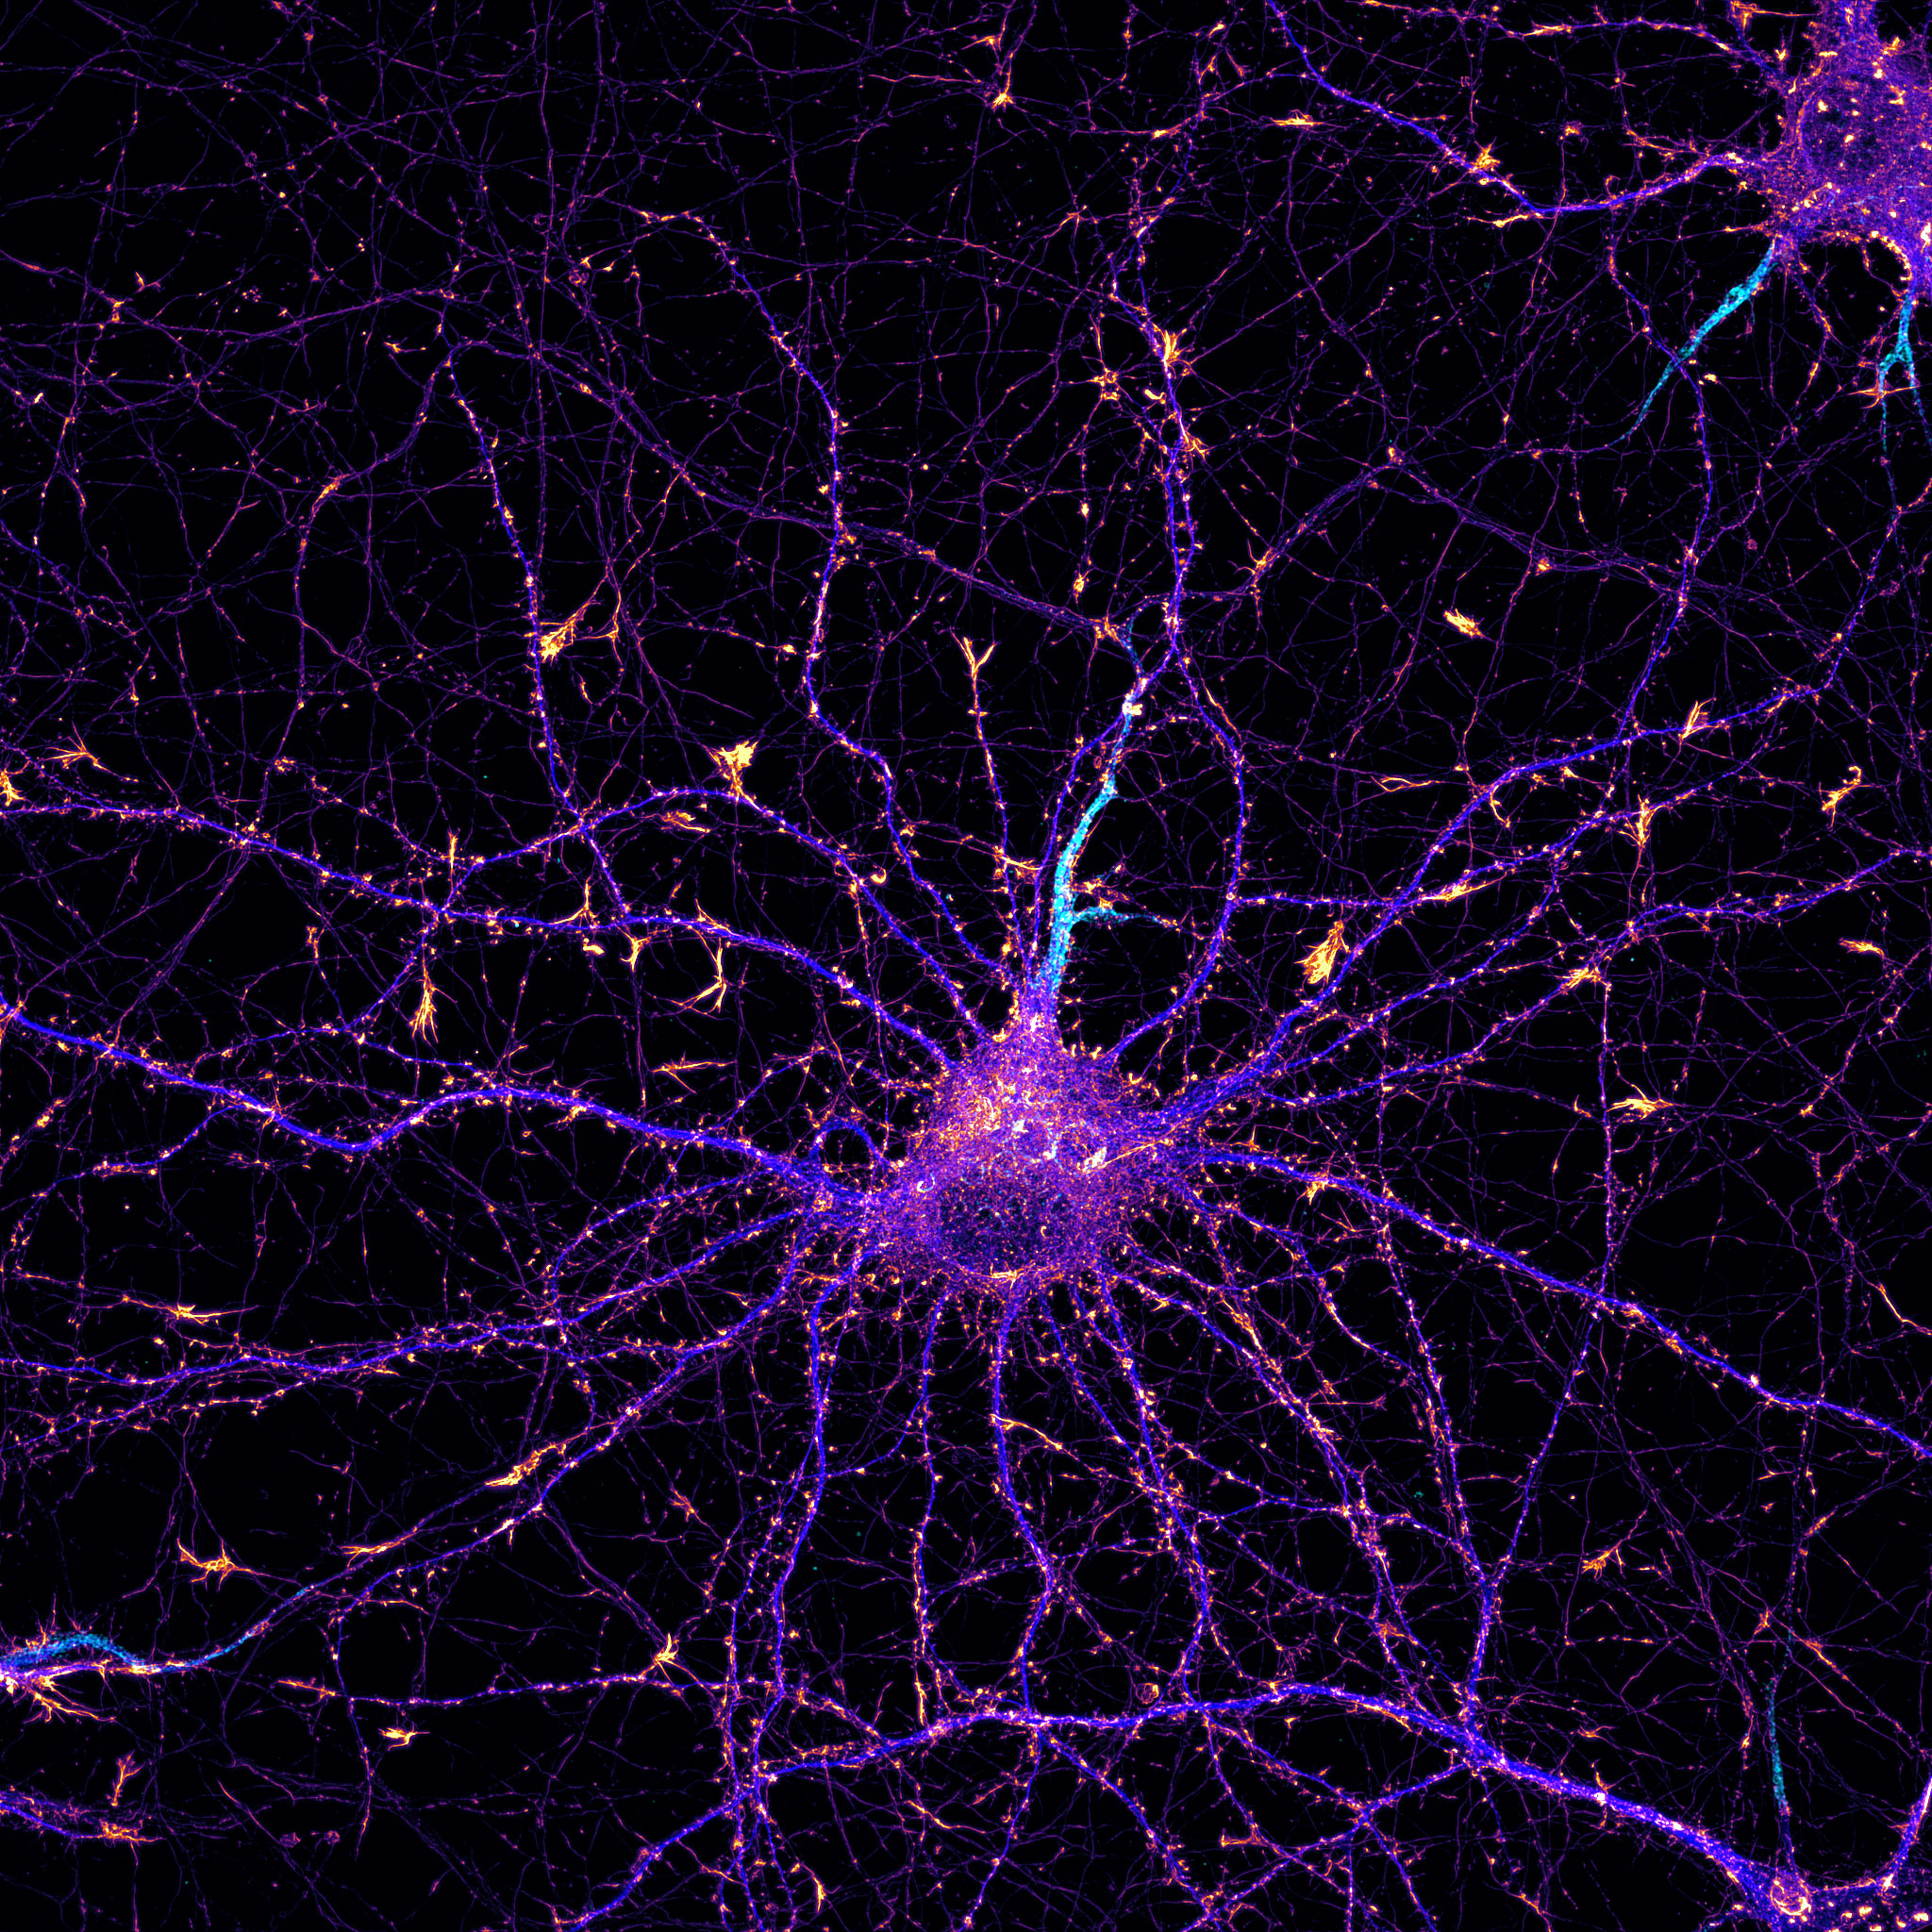 Hippocampal neuron labeled for actin (fire), map2 (blue) and neurofascin (cyan)